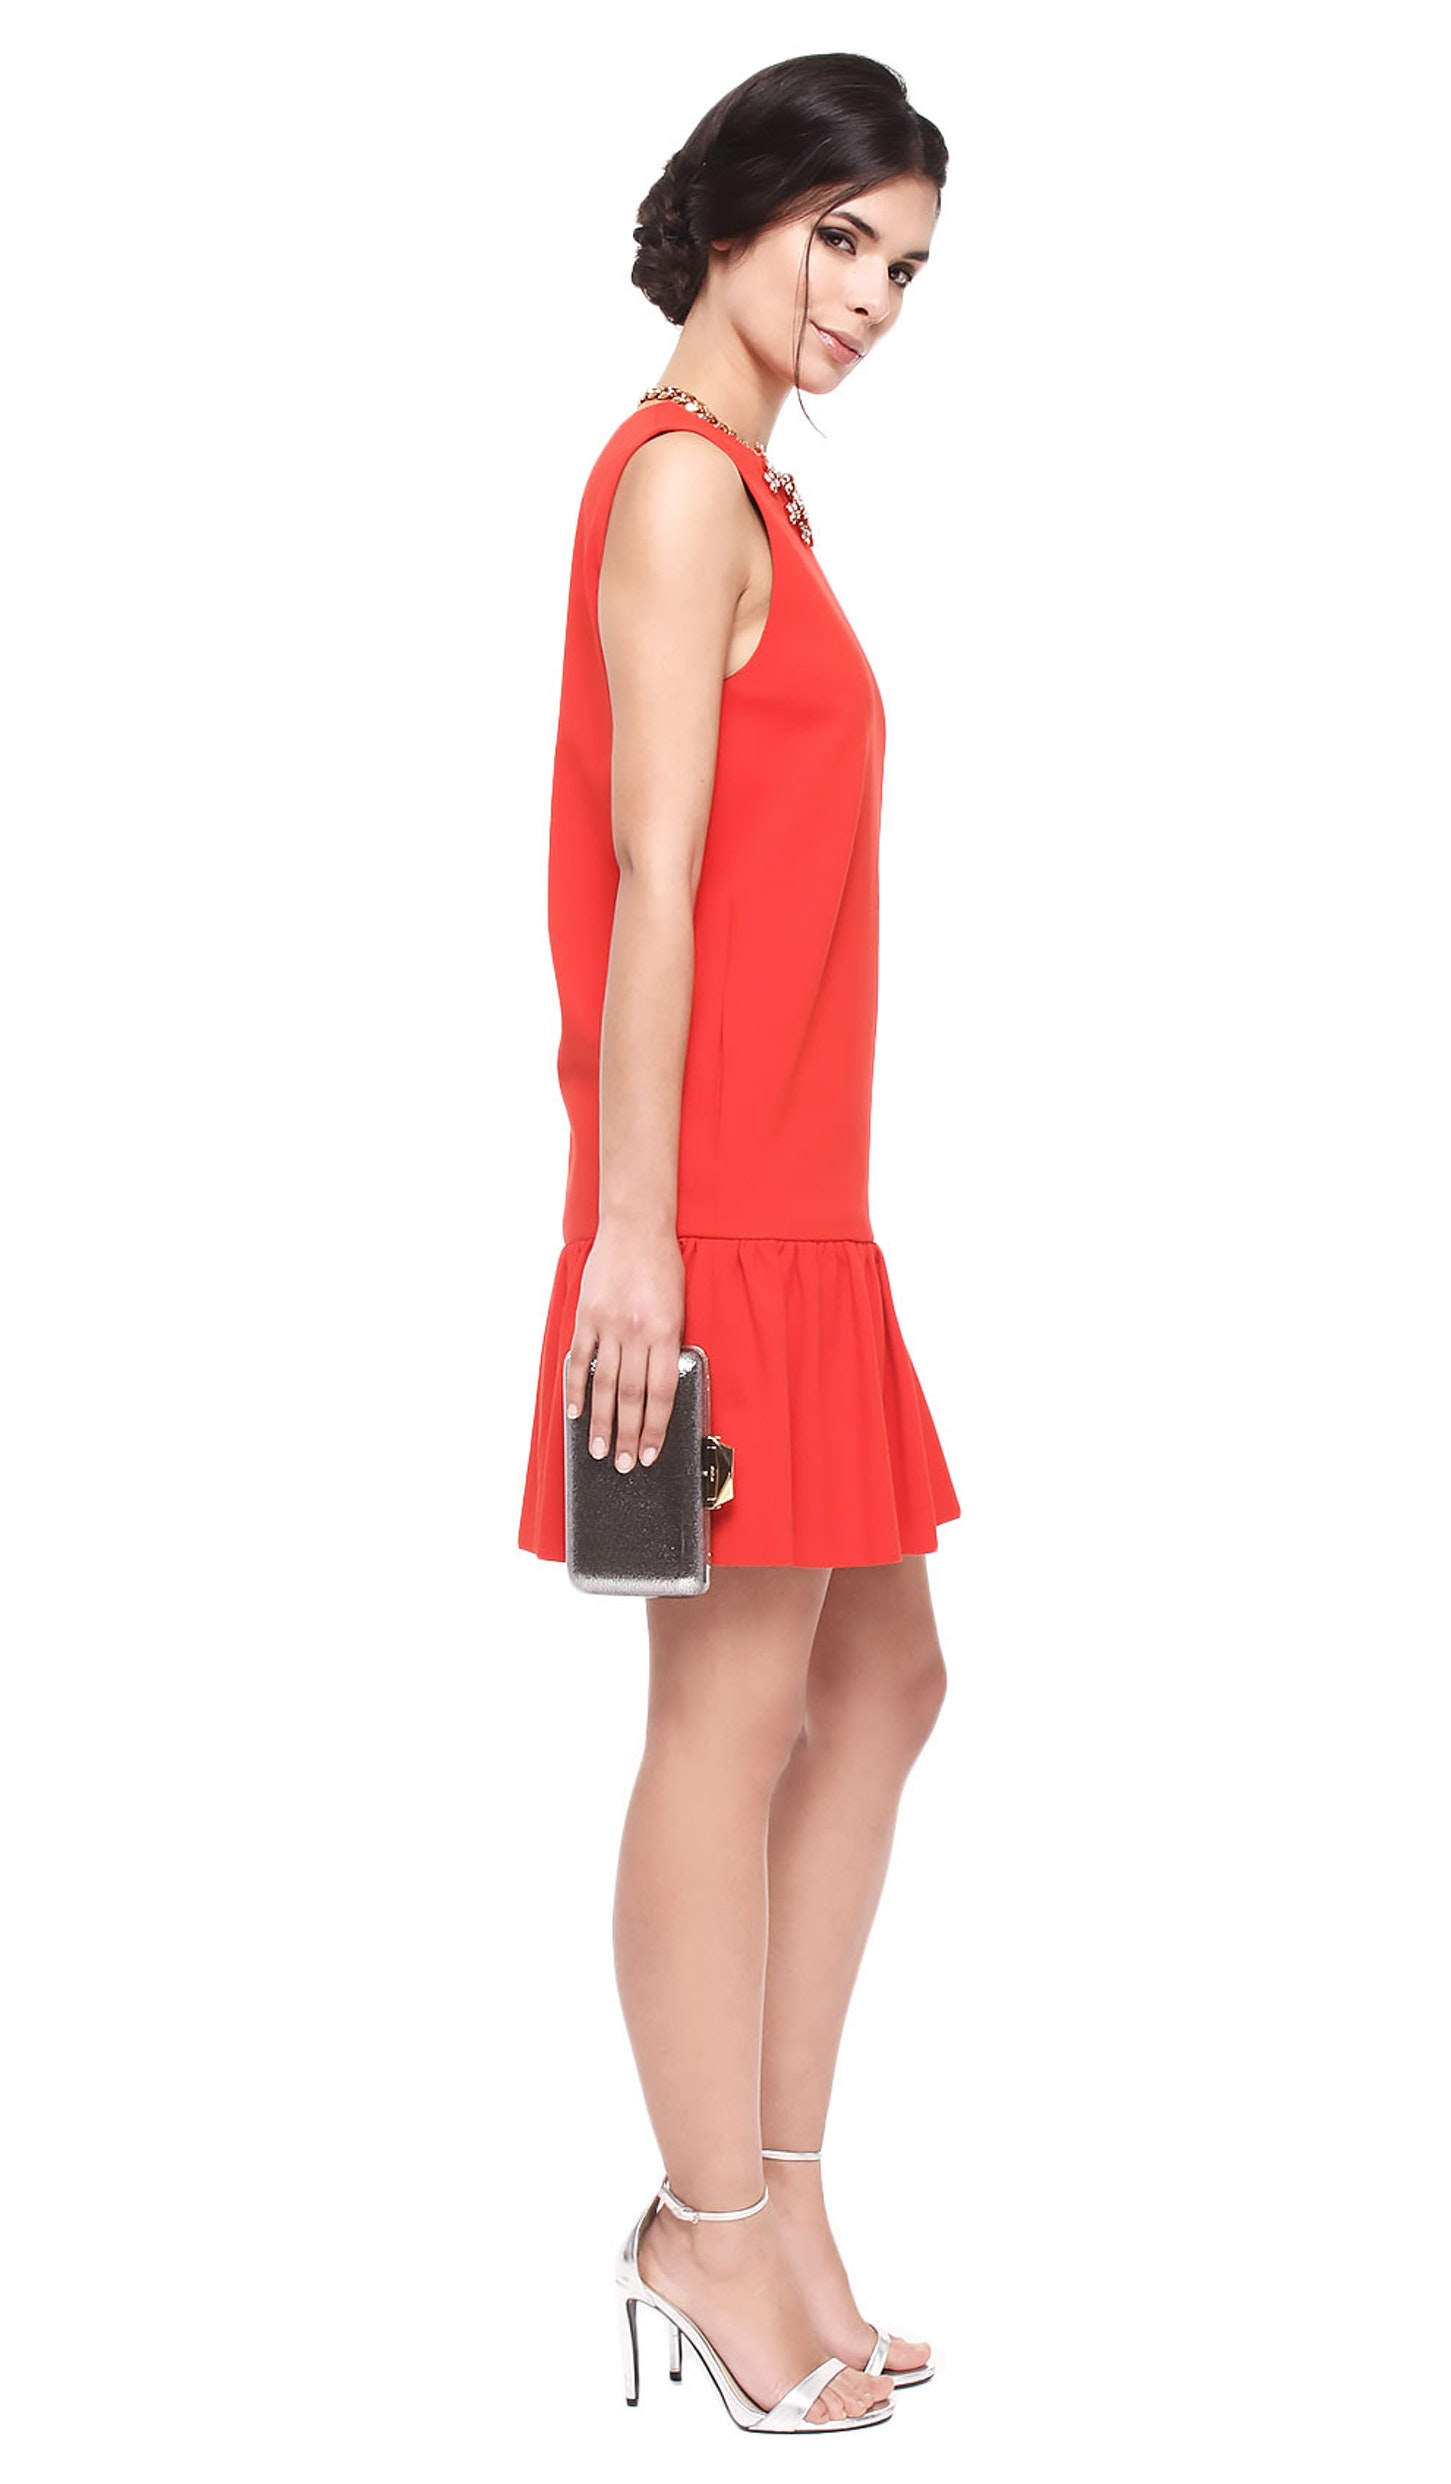 291252049ce Red Shift Dress - MSGM — Chic by Choice Sale